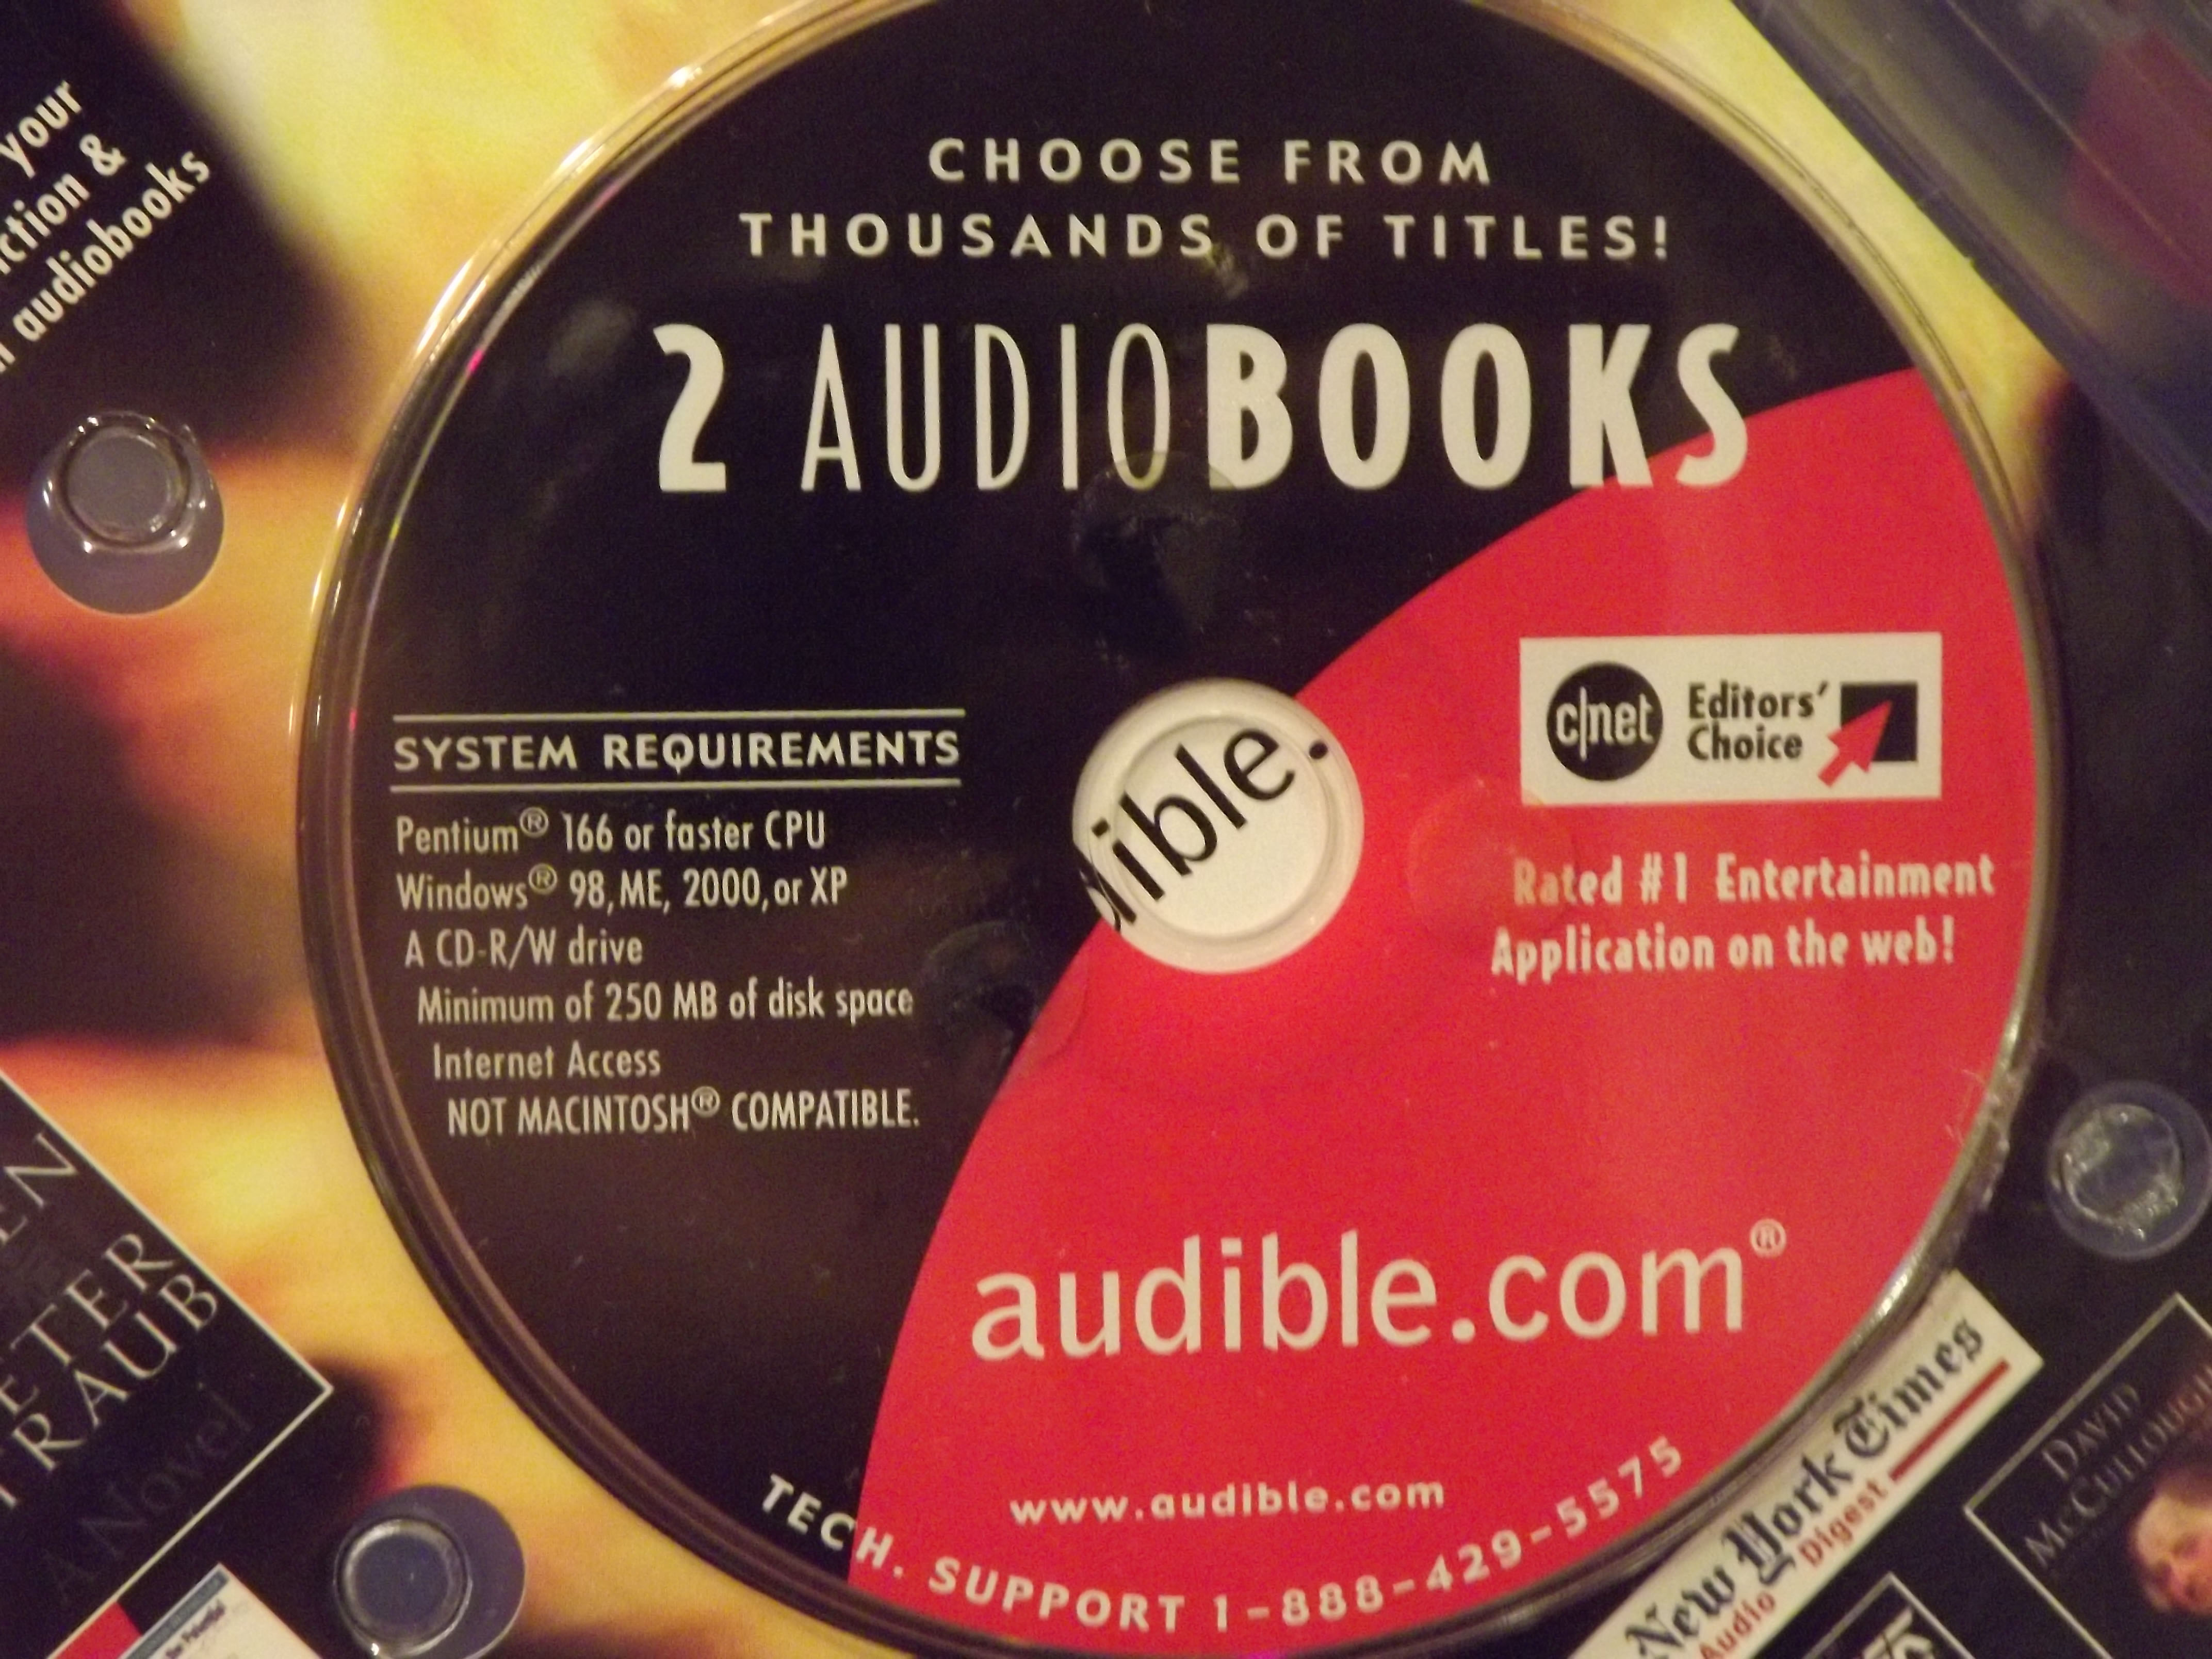 AOL's Audible.com